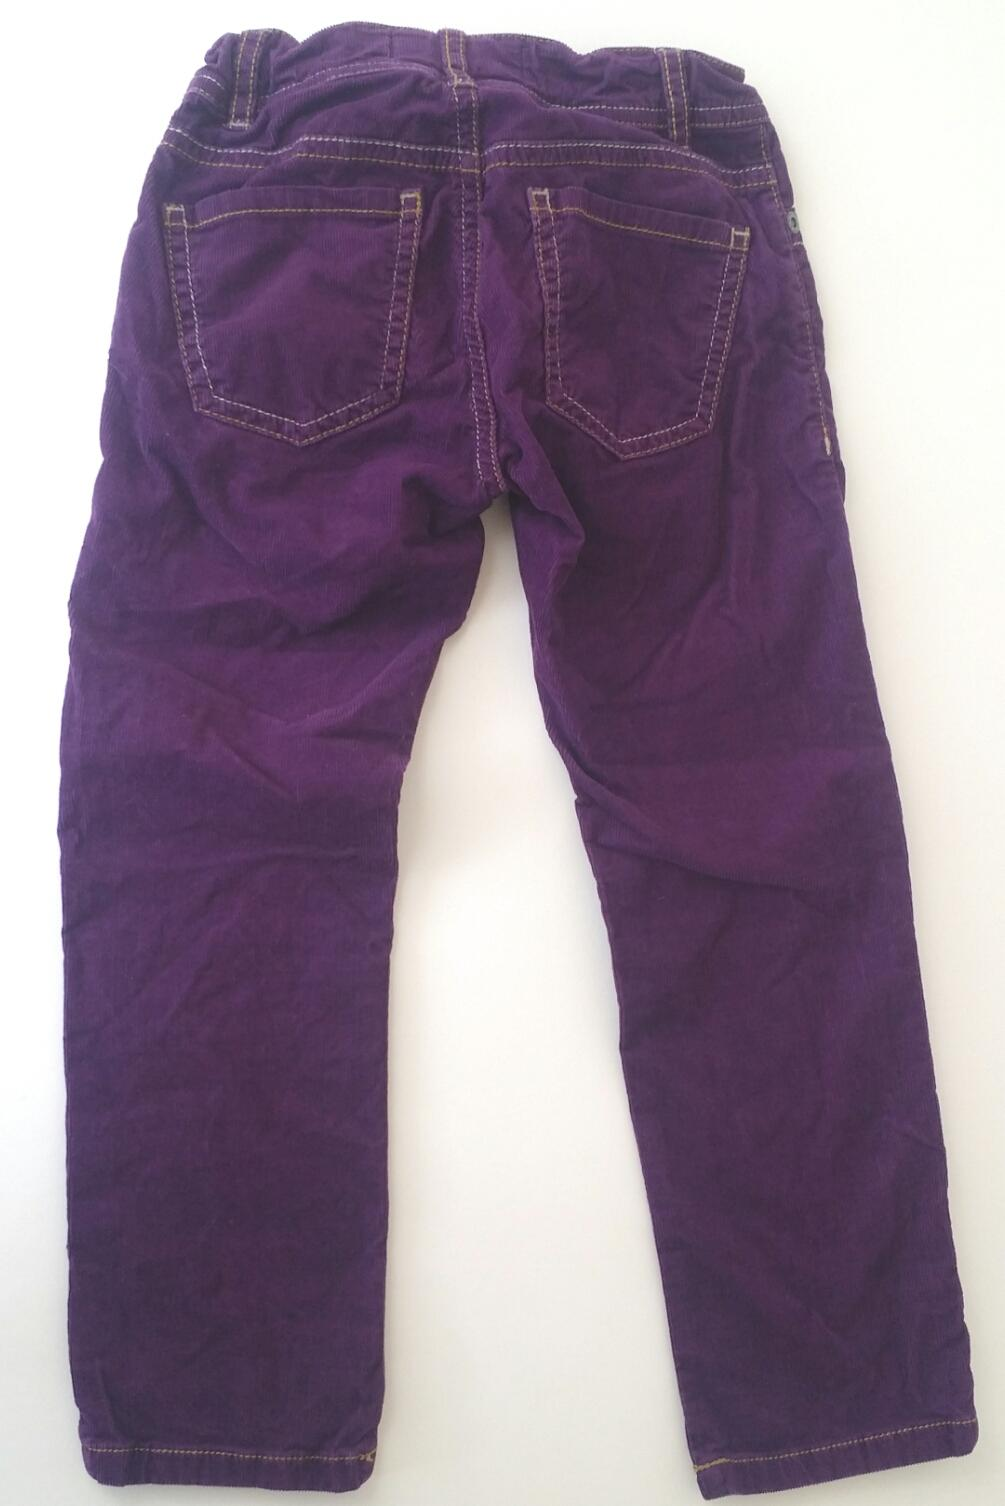 Mini-Boden-5-YEARS-Corduroy-Pants_2098990C.jpg